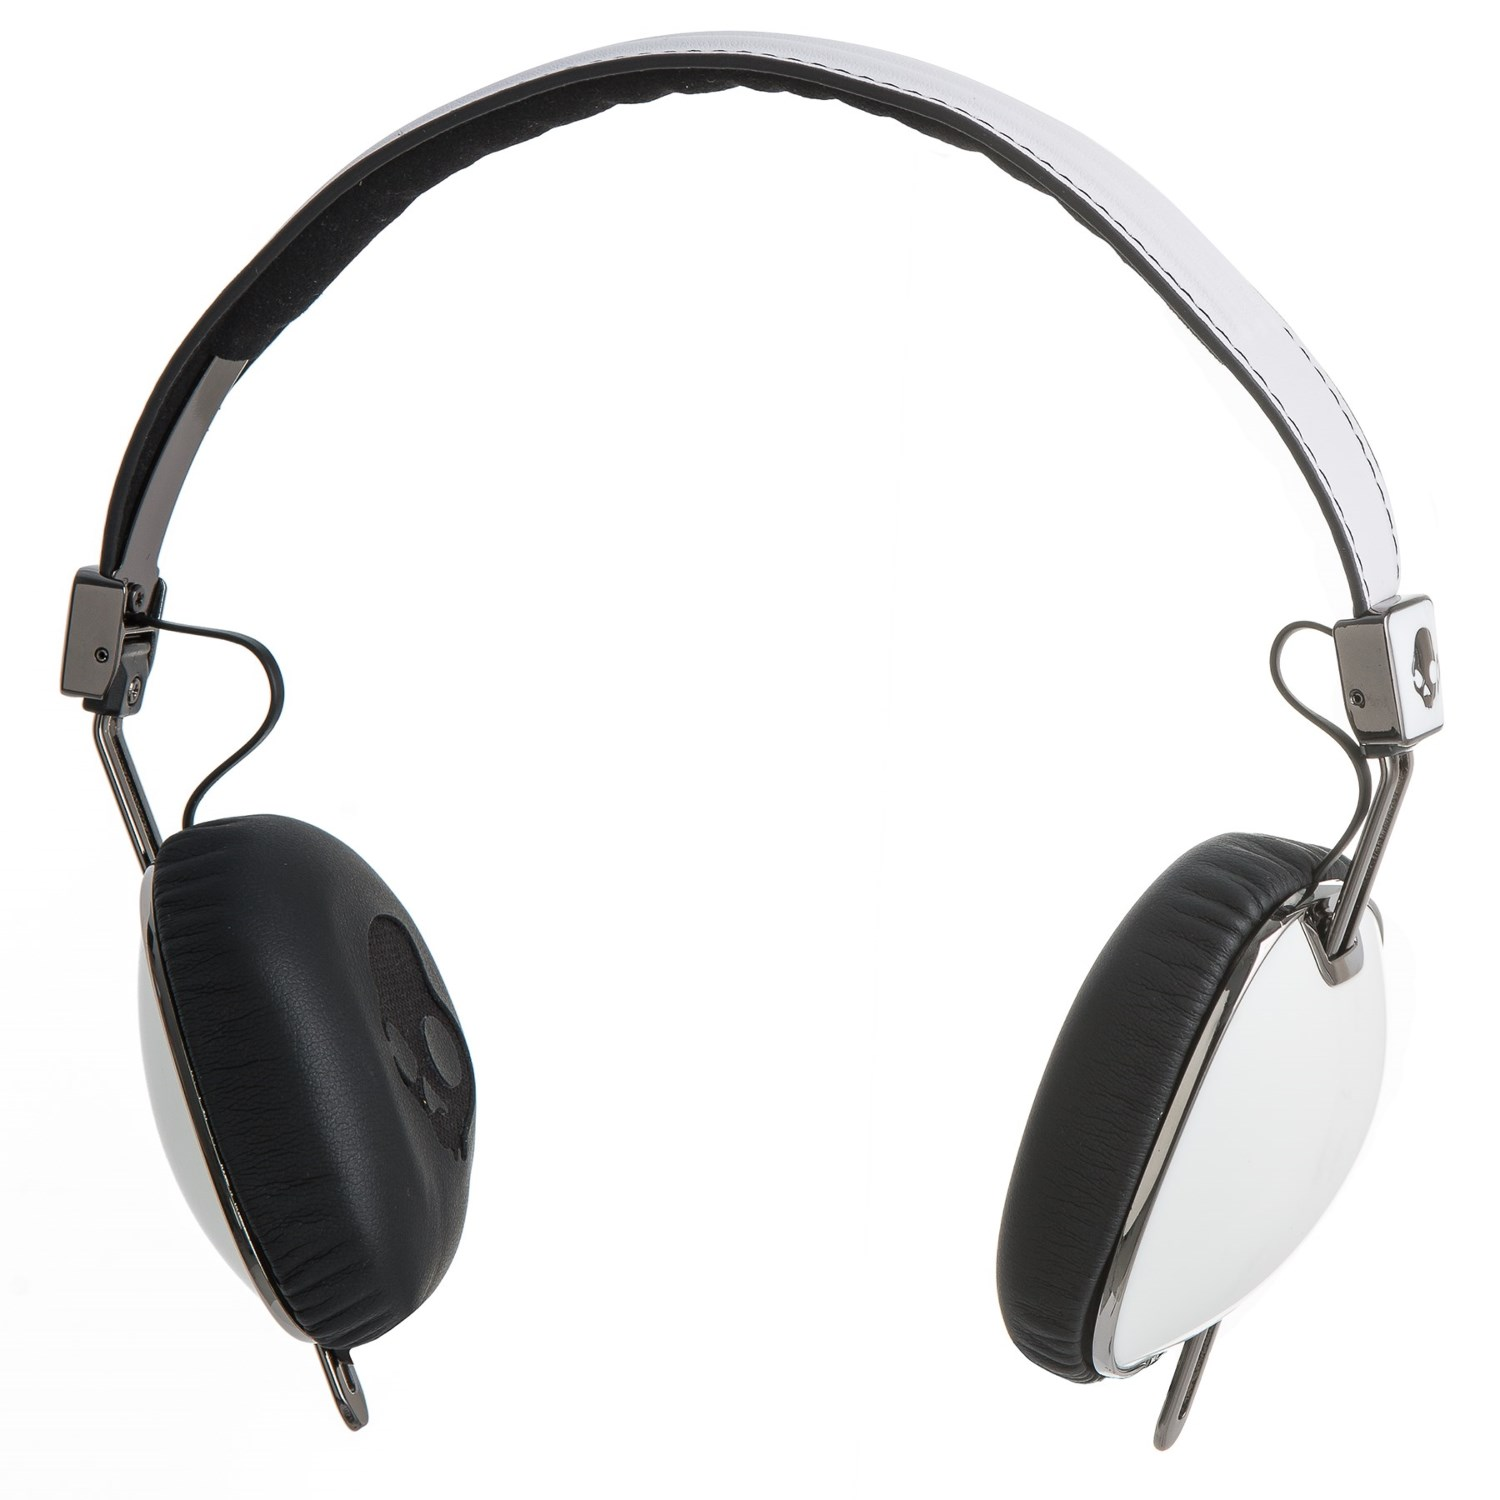 hight resolution of skullcandy navigator wired headphones with mic in white black click to expand